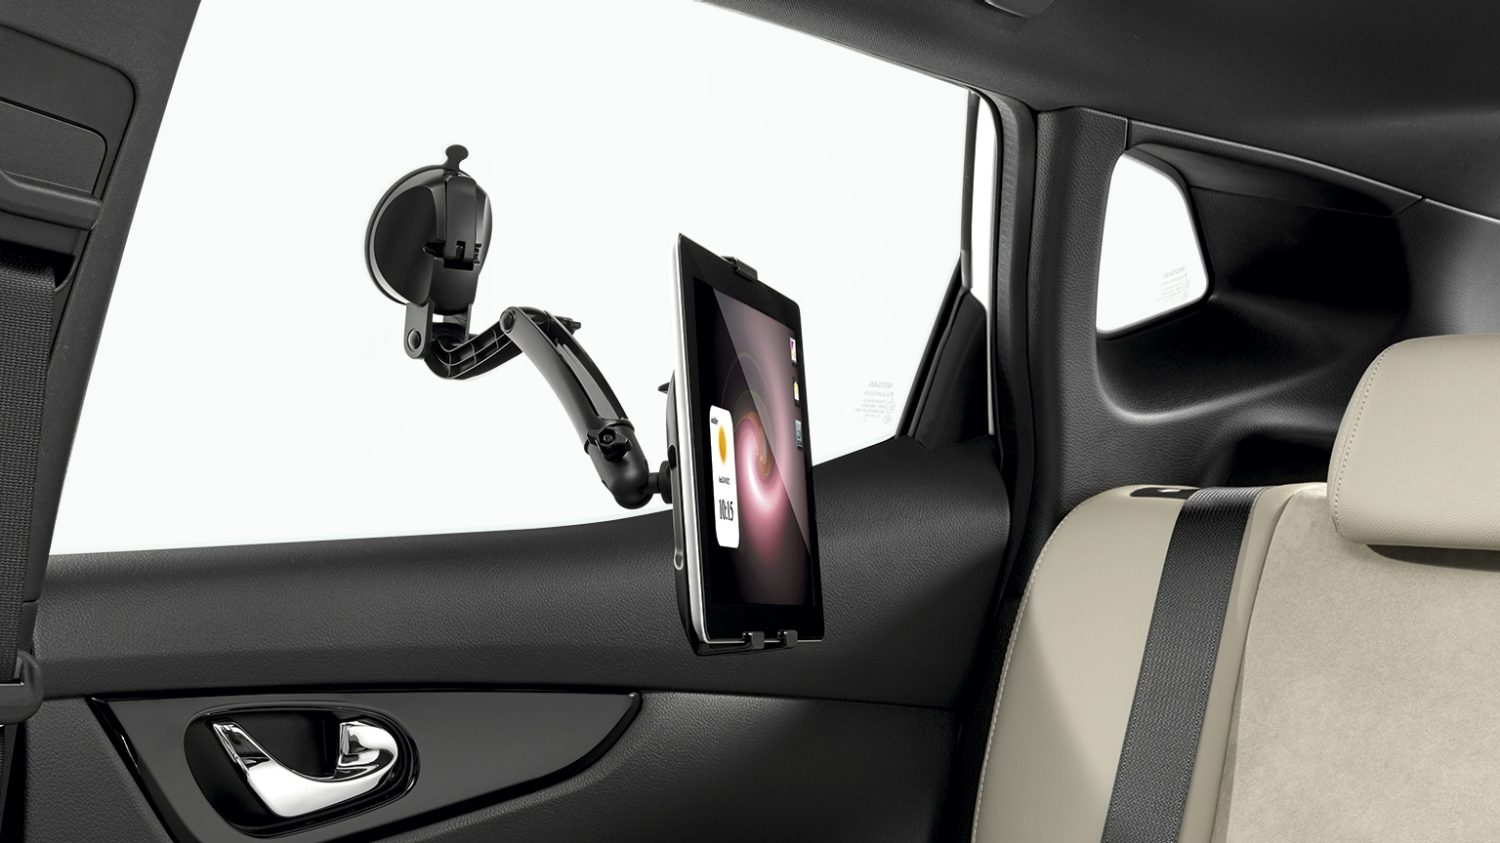 Nissan Micra Tablet Holder Suction Mount